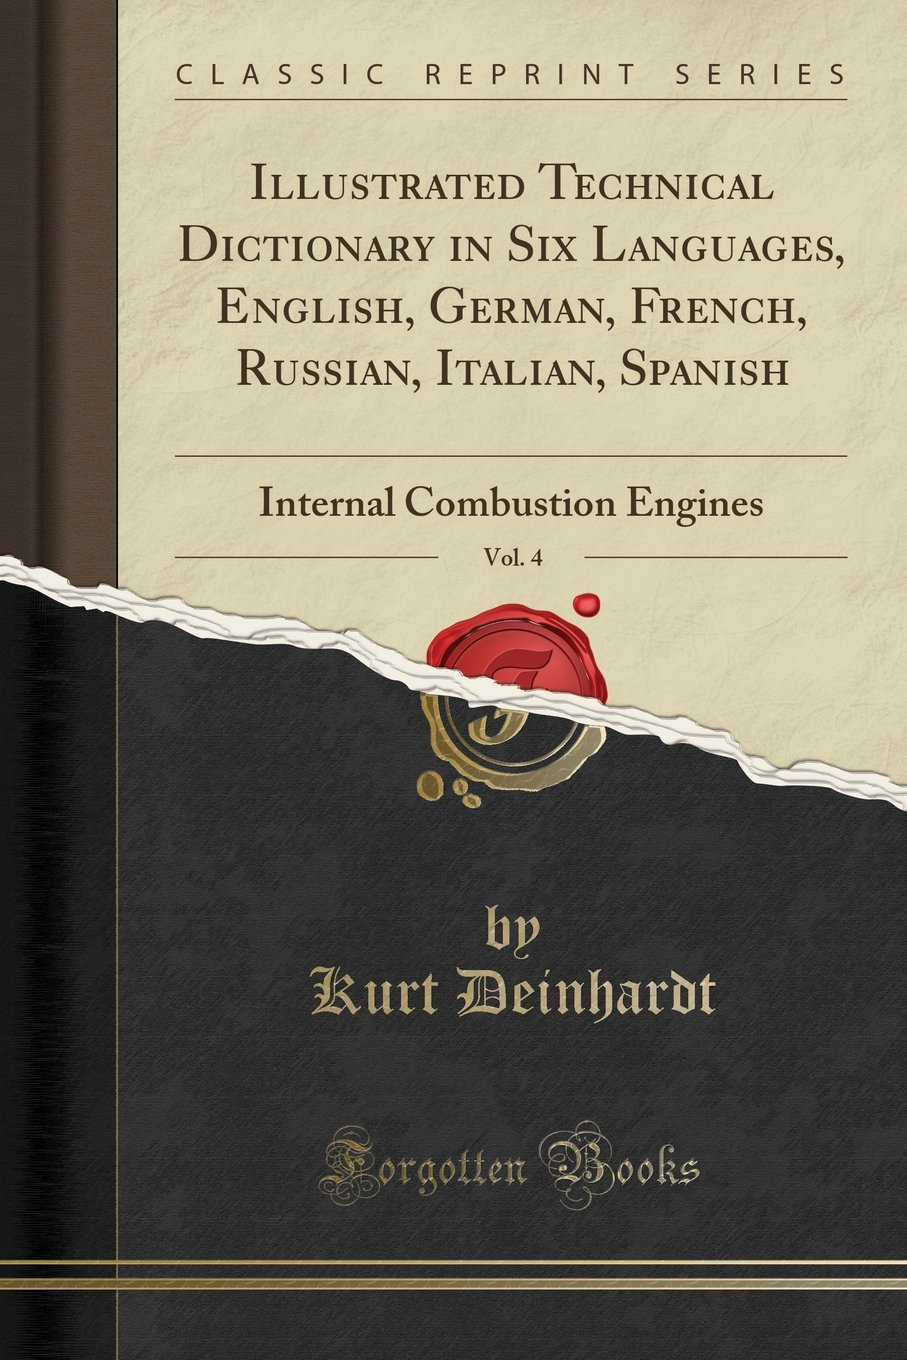 Illustrated Technical Dictionary in Six Languages, English, German, French, Russian, Italian, Spanish, Vol. 4: Internal Combustion Engines (Classic Reprint)